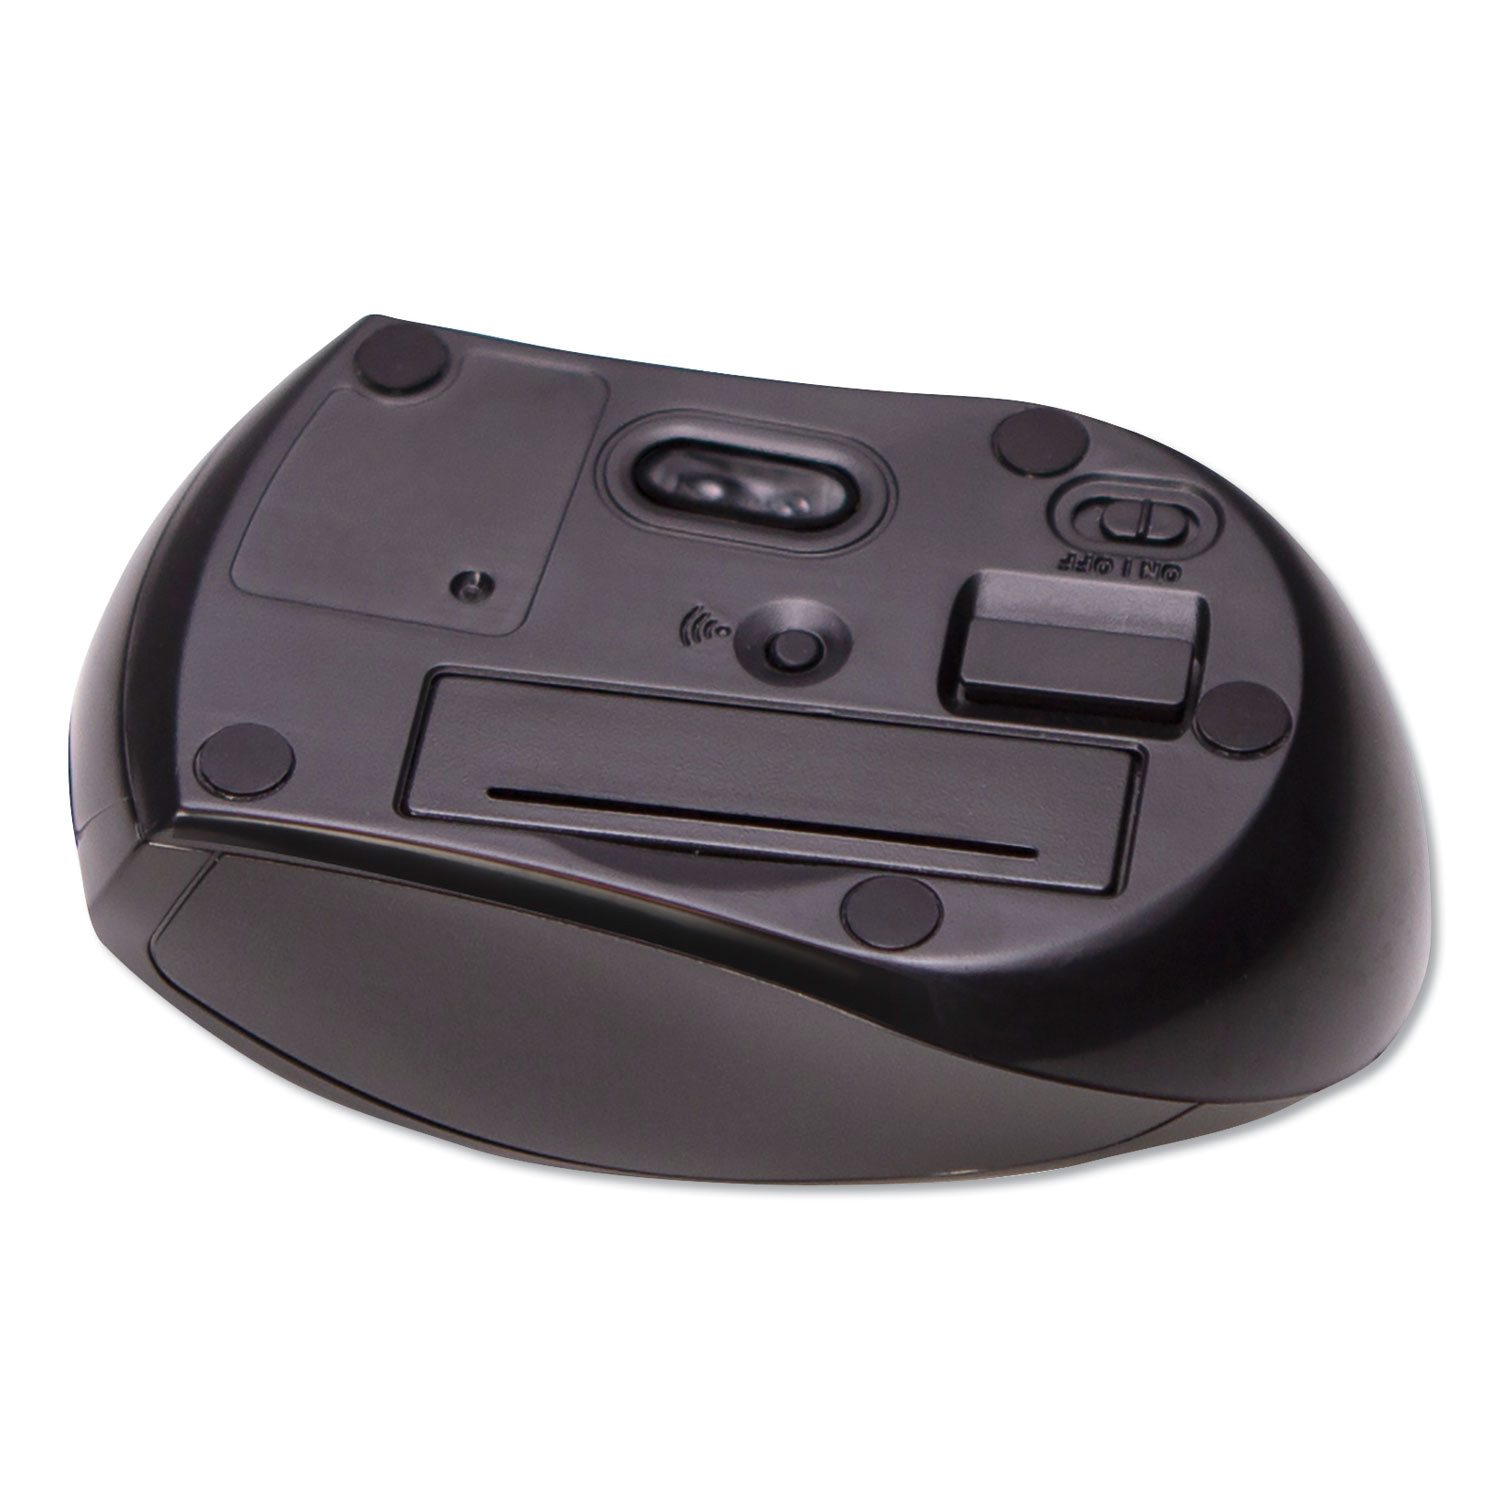 Compact Travel Mouse, 2.4 GHz Frequency/26 ft Wireless Range, Left/Right Hand Use, Black